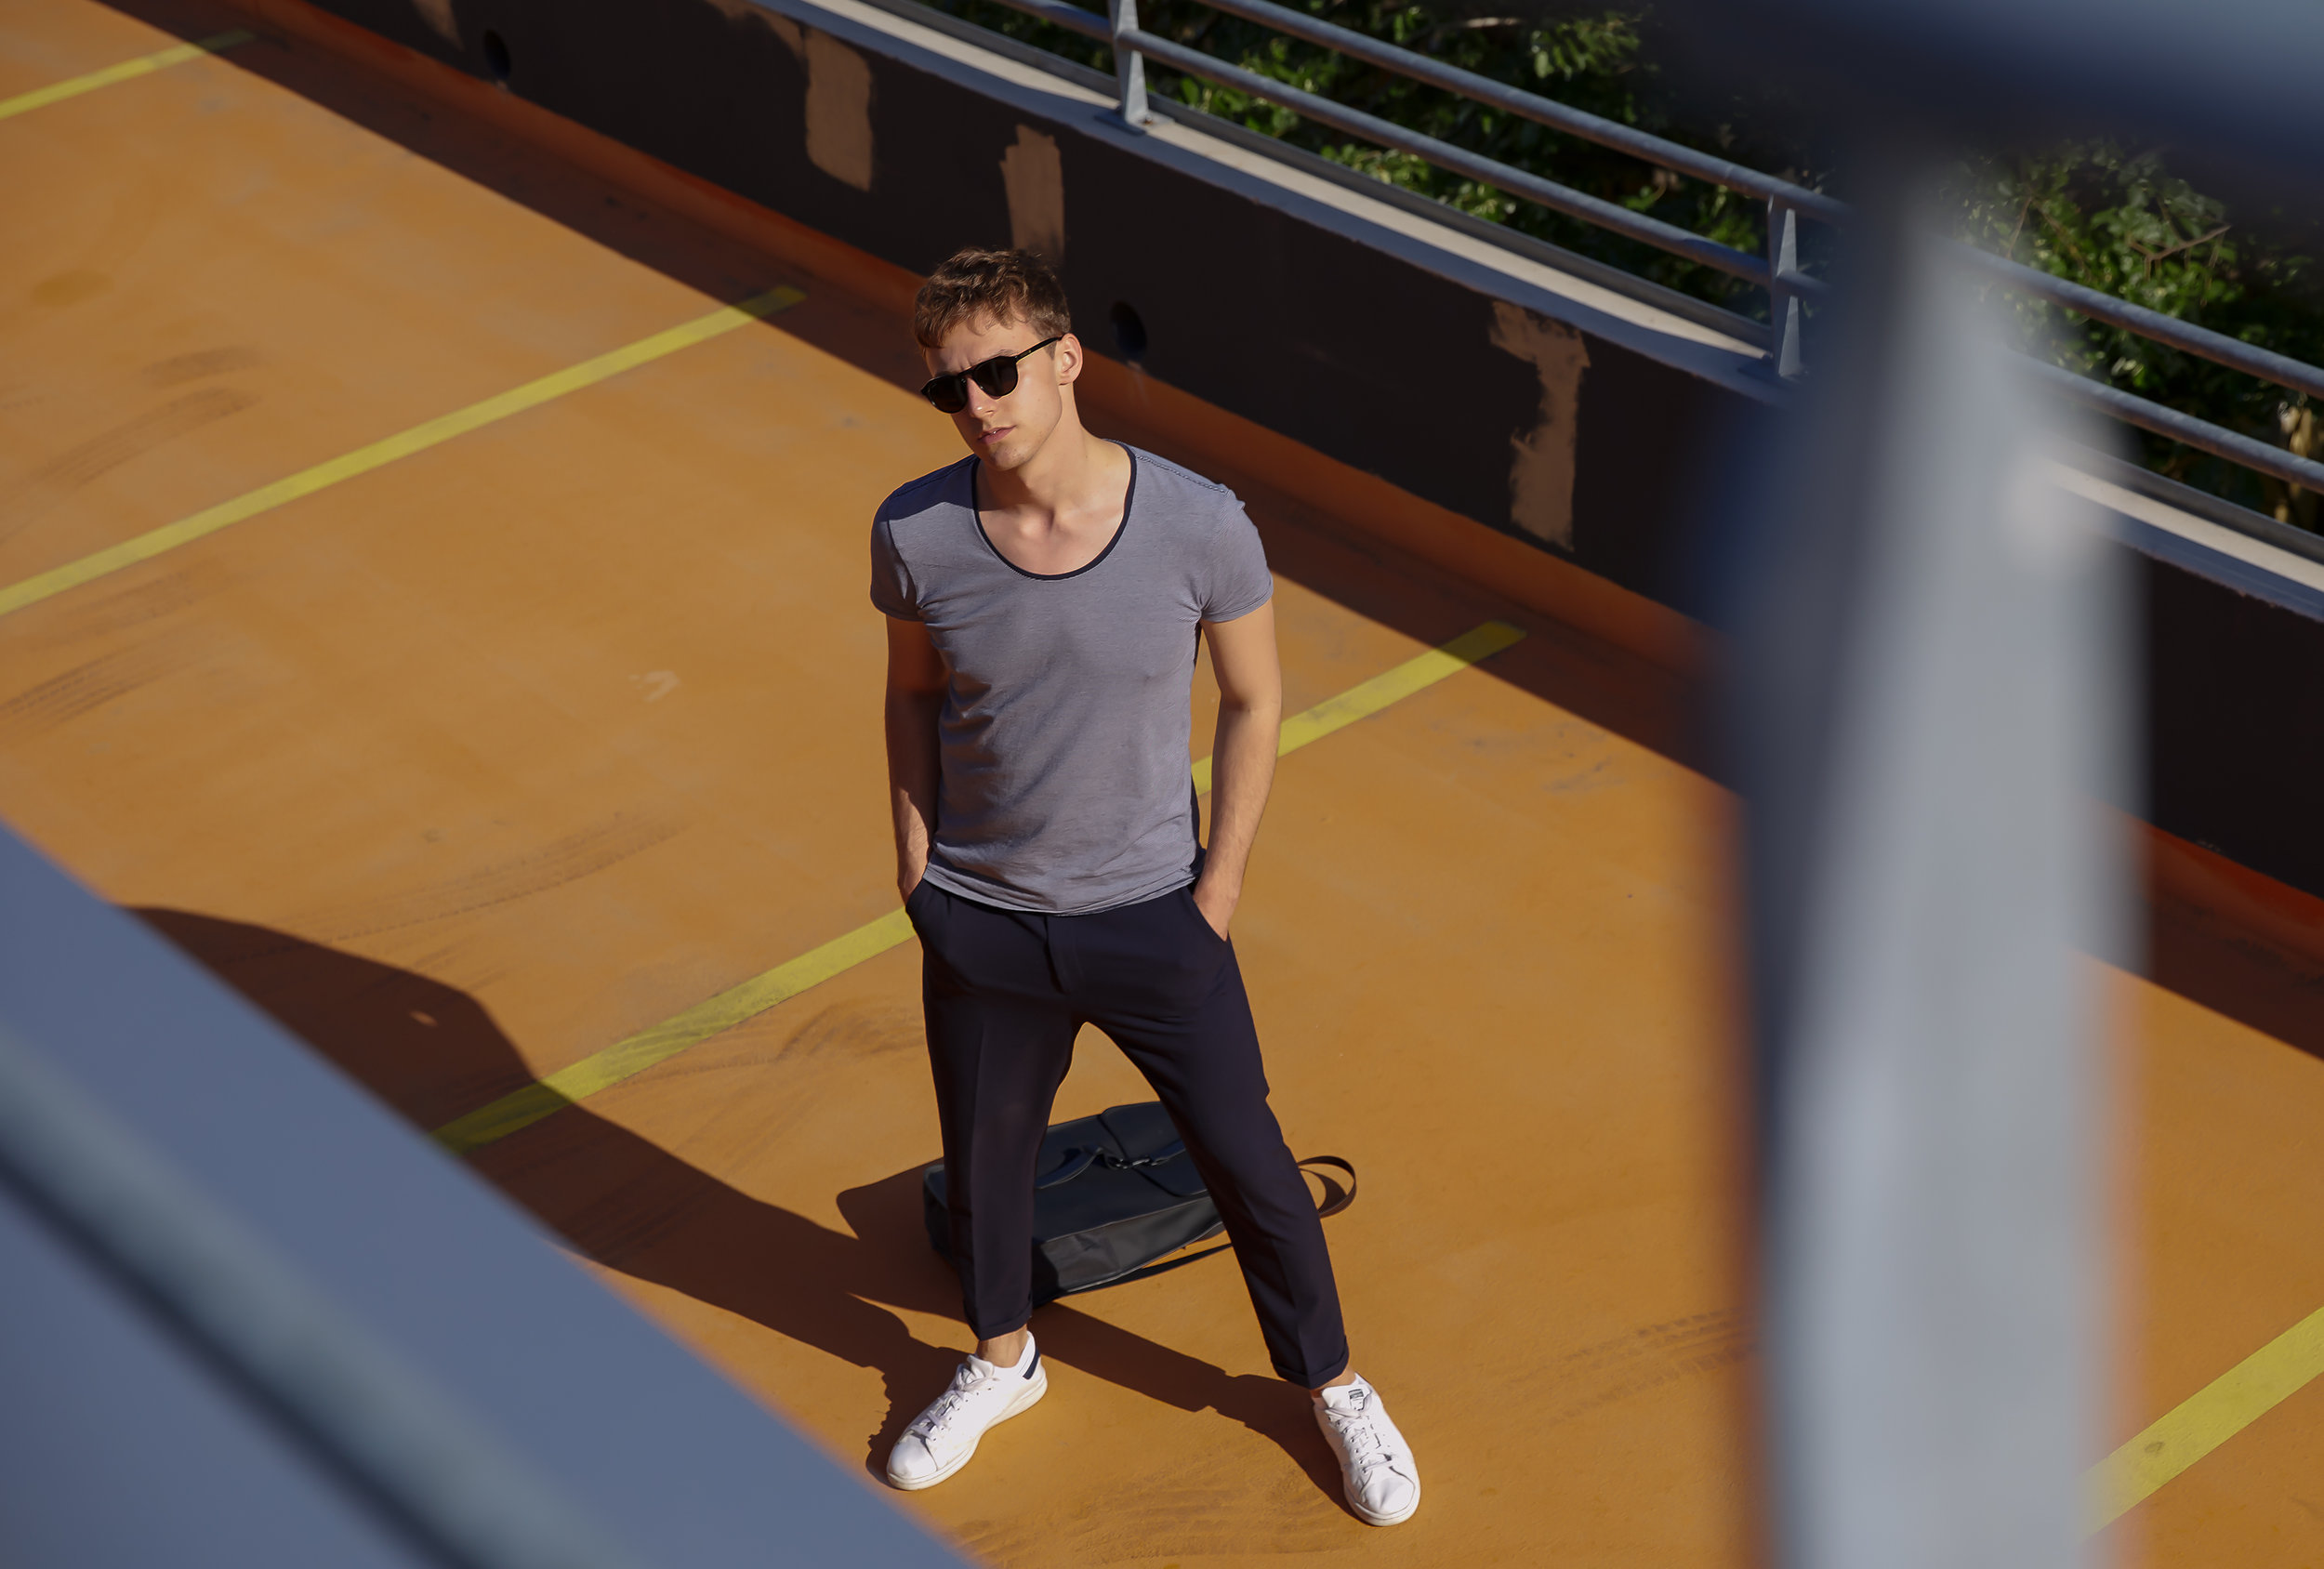 OUTFIT:  T-Shirt: SCOTCH&SODA  Trousers: ZARA  Shoes: ADIDAS STAN SMITH  Backpack: RAINS  Shades: HAWKERS    Photography:   Alexander Sutter